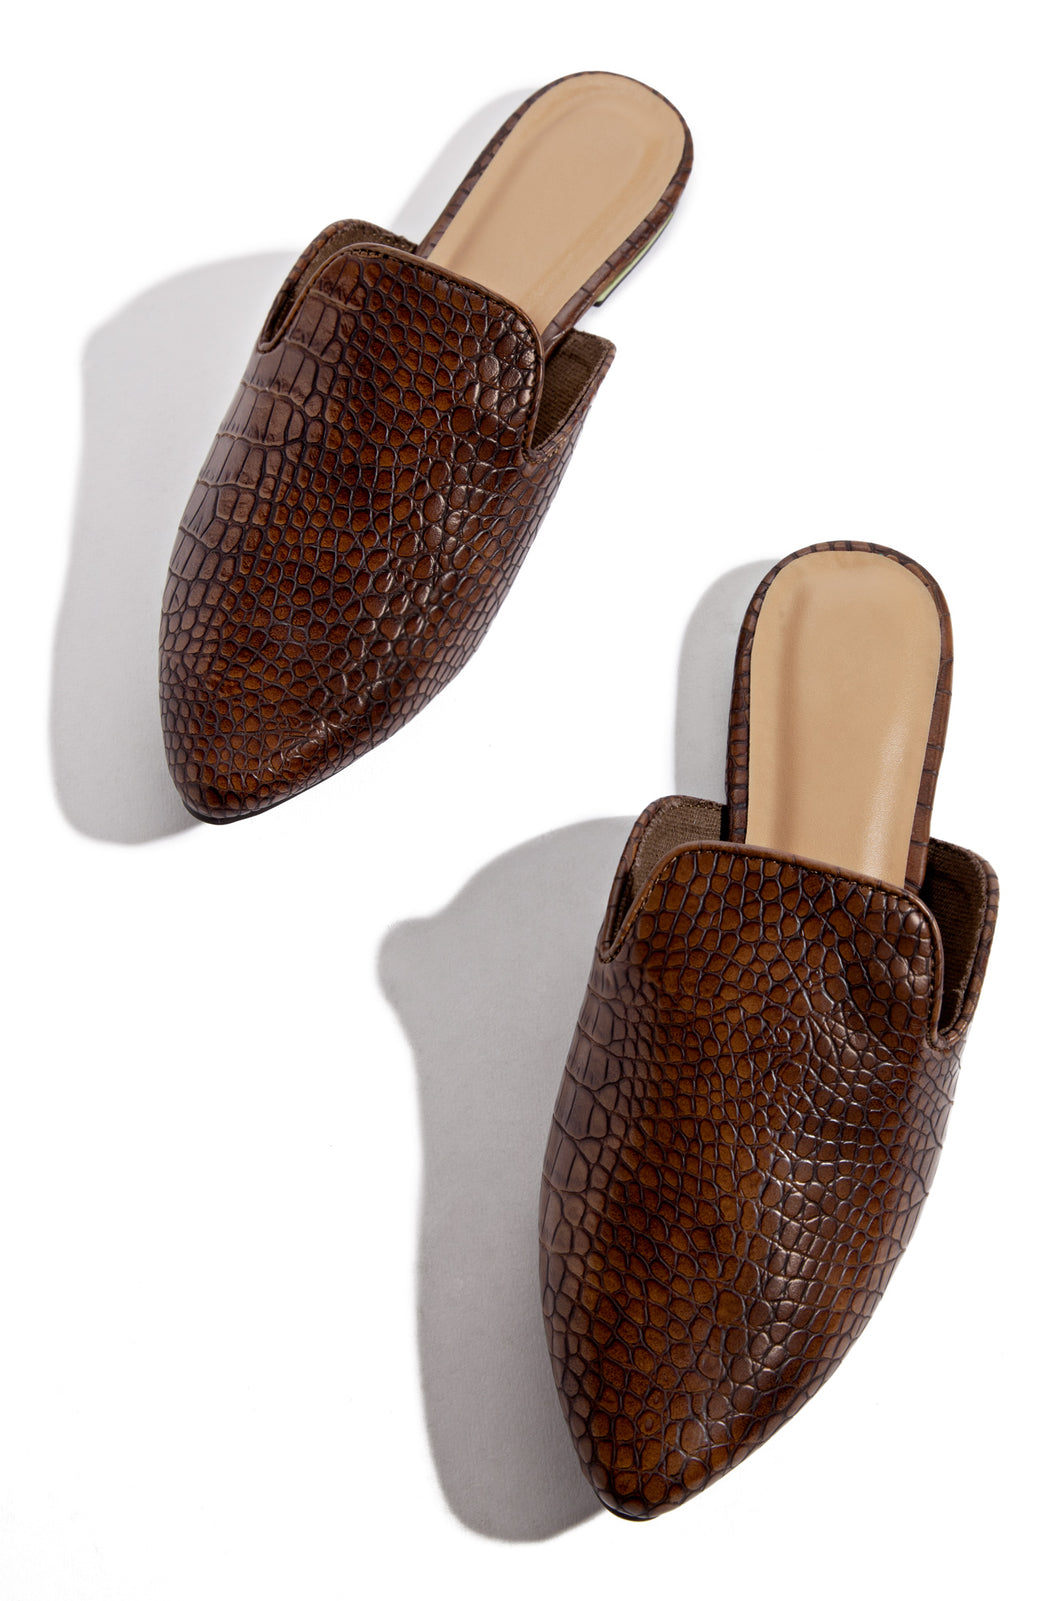 Selfmade - Brown Croc